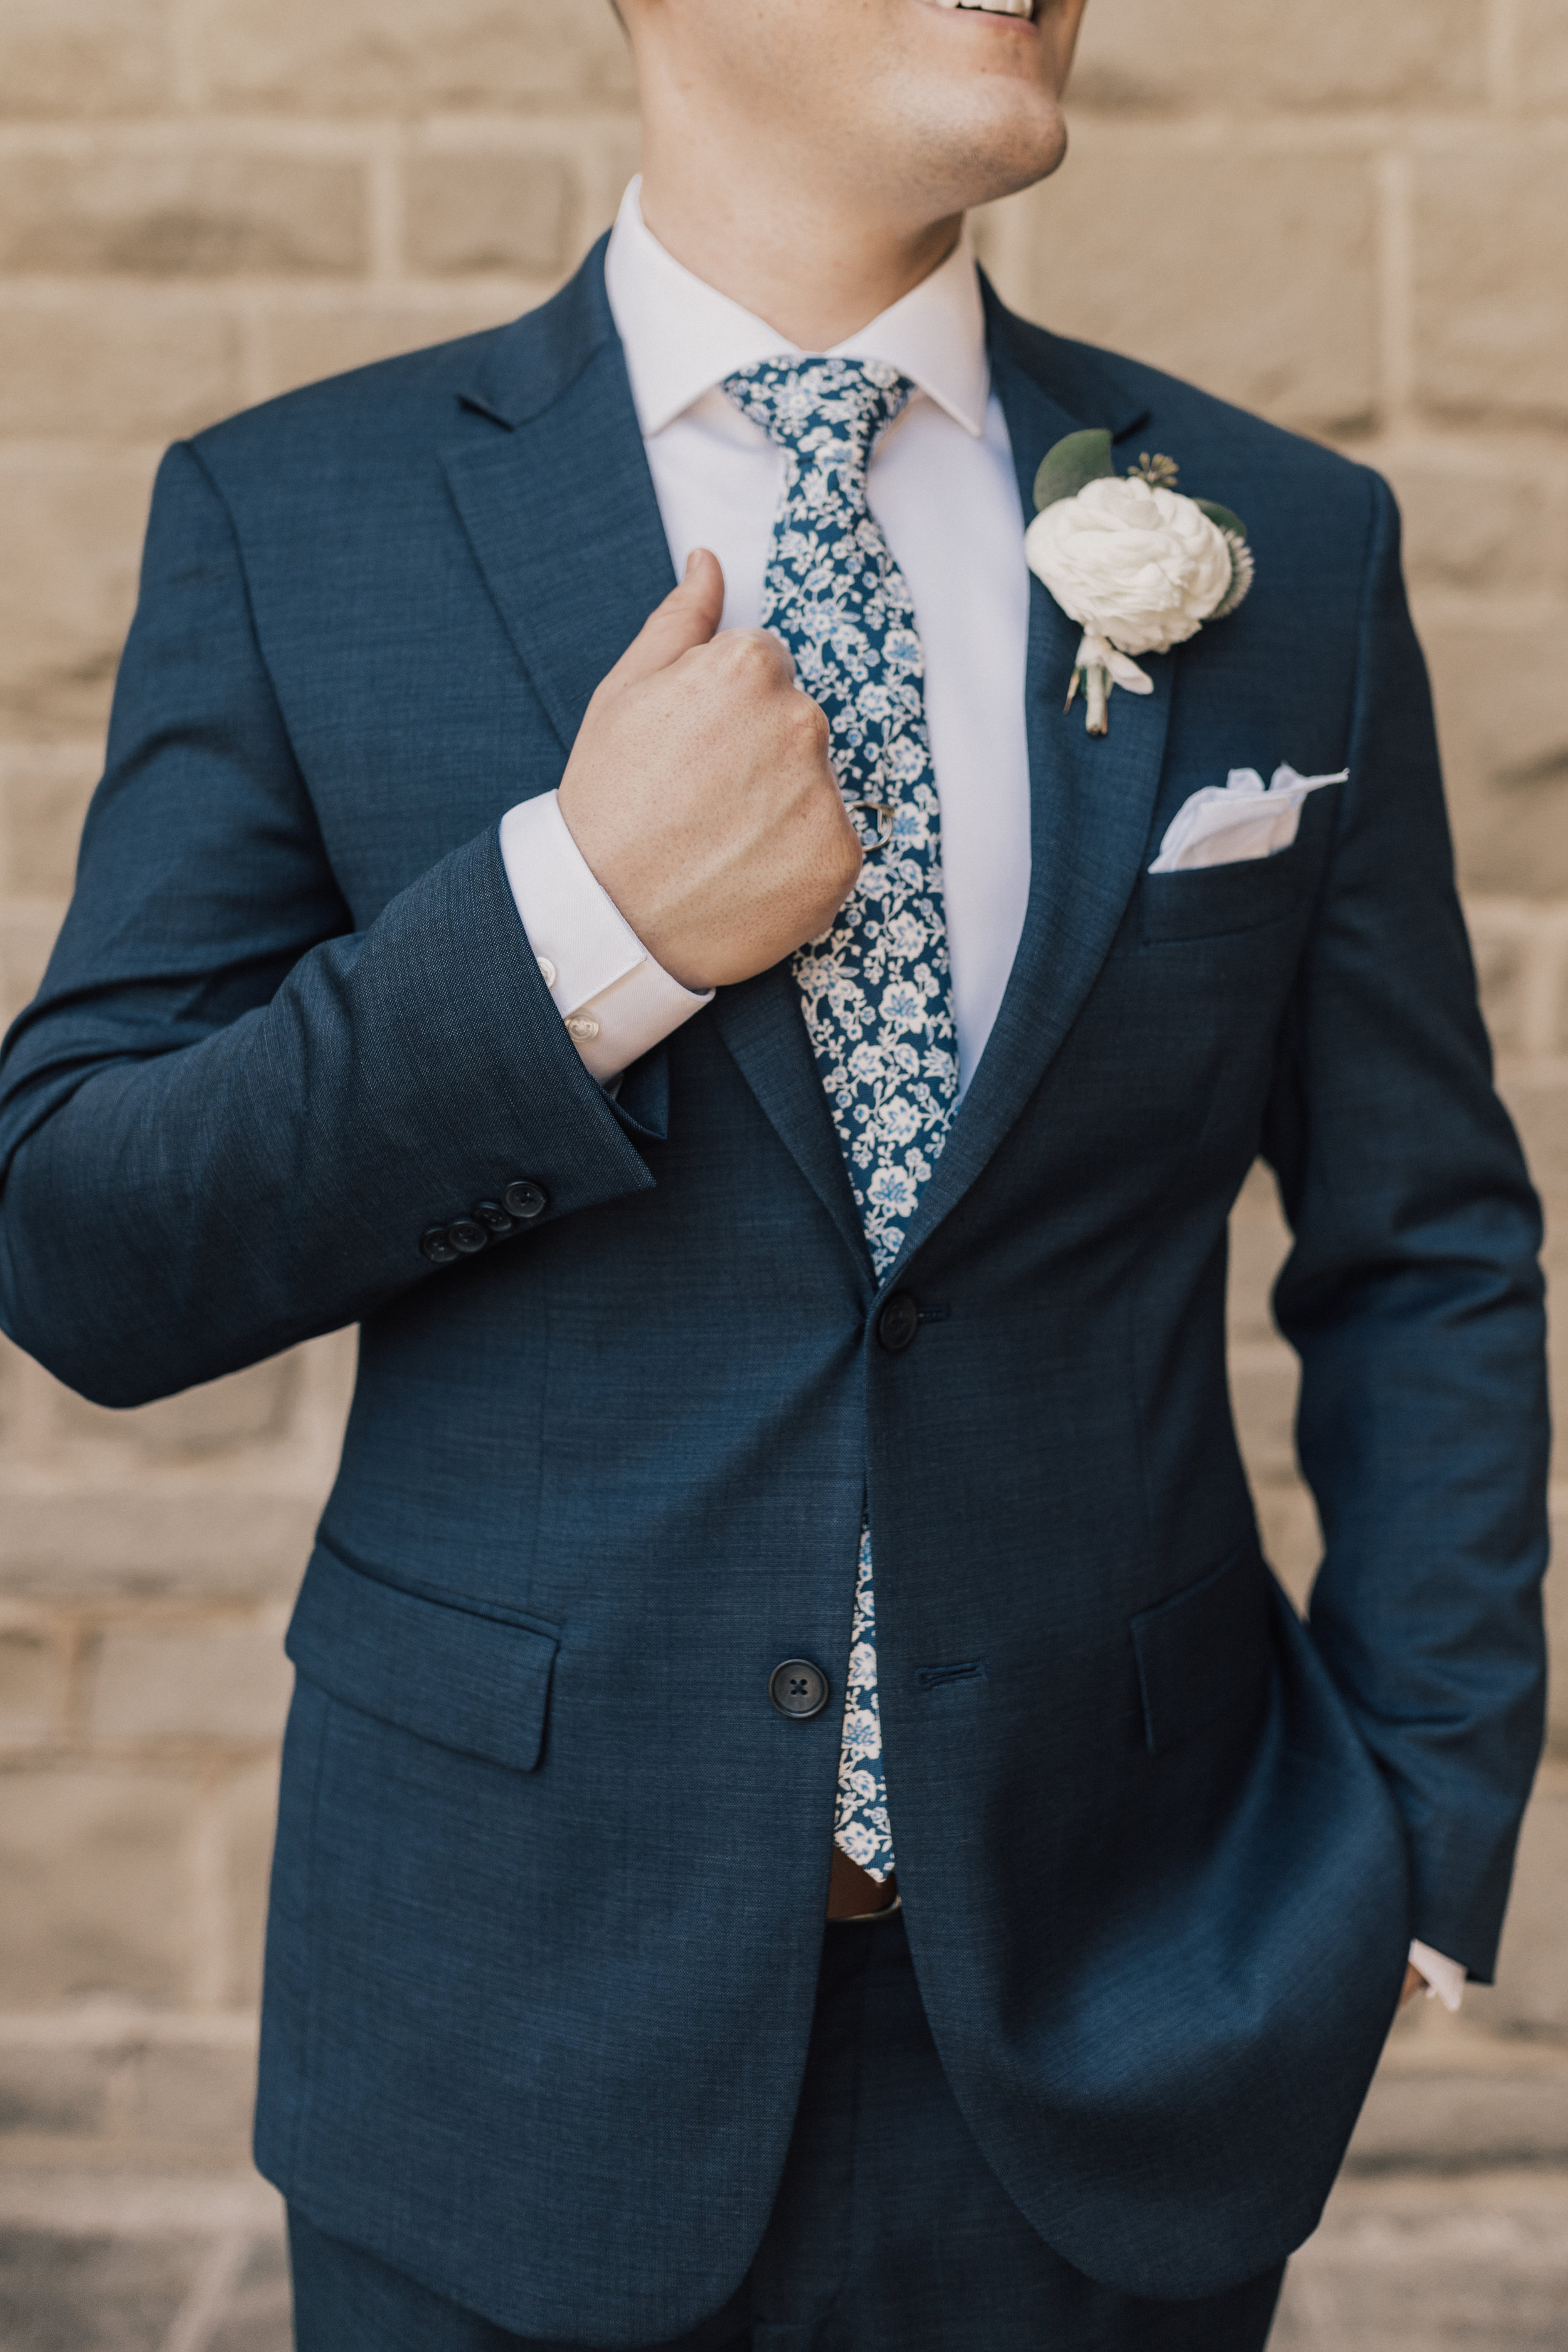 Greystone Mansion, Greystone Mansion Beverly Hills, Beverly Hills Wedding, California Estate Wedding, Navy Groom Suit ideas, Groom floral tie accent, white ranunculus boutonniere, white groom boutonniere ideas